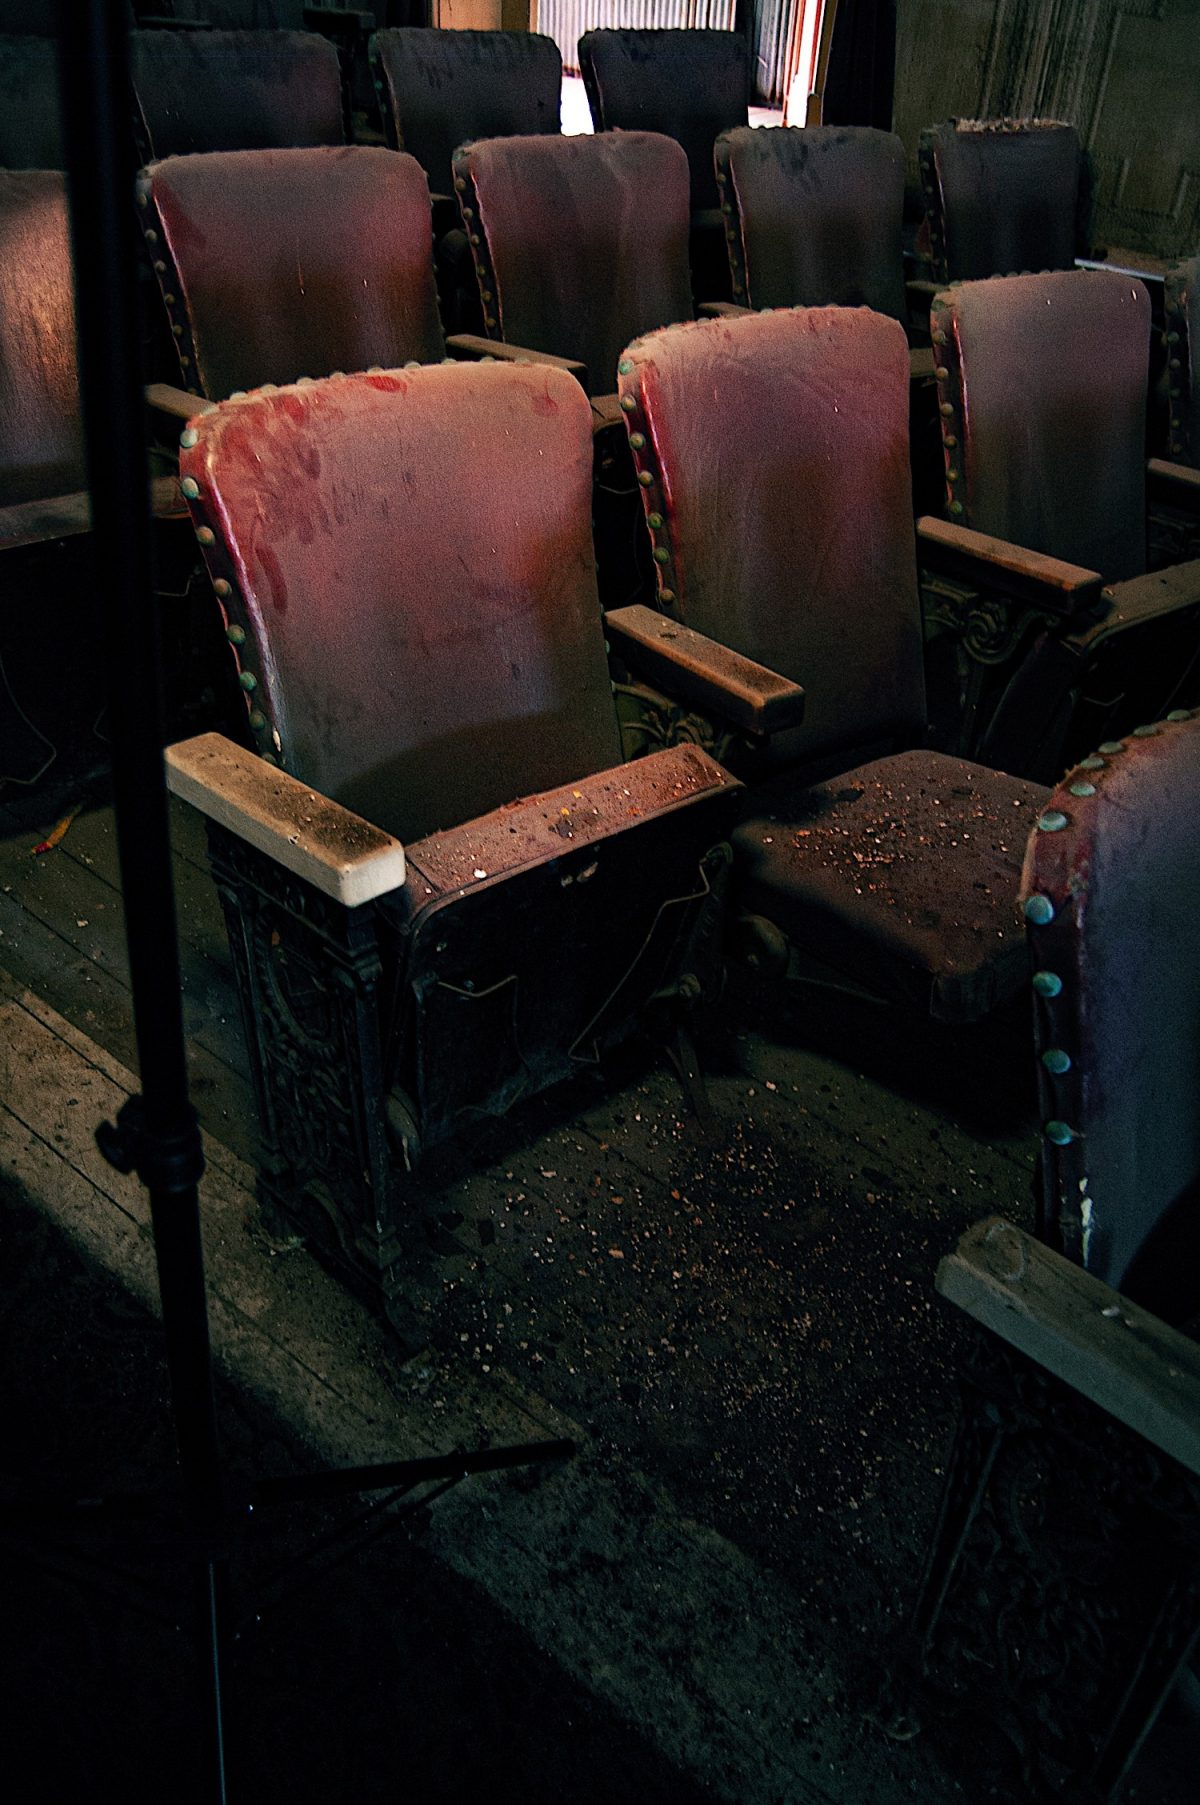 Seats covered in dust